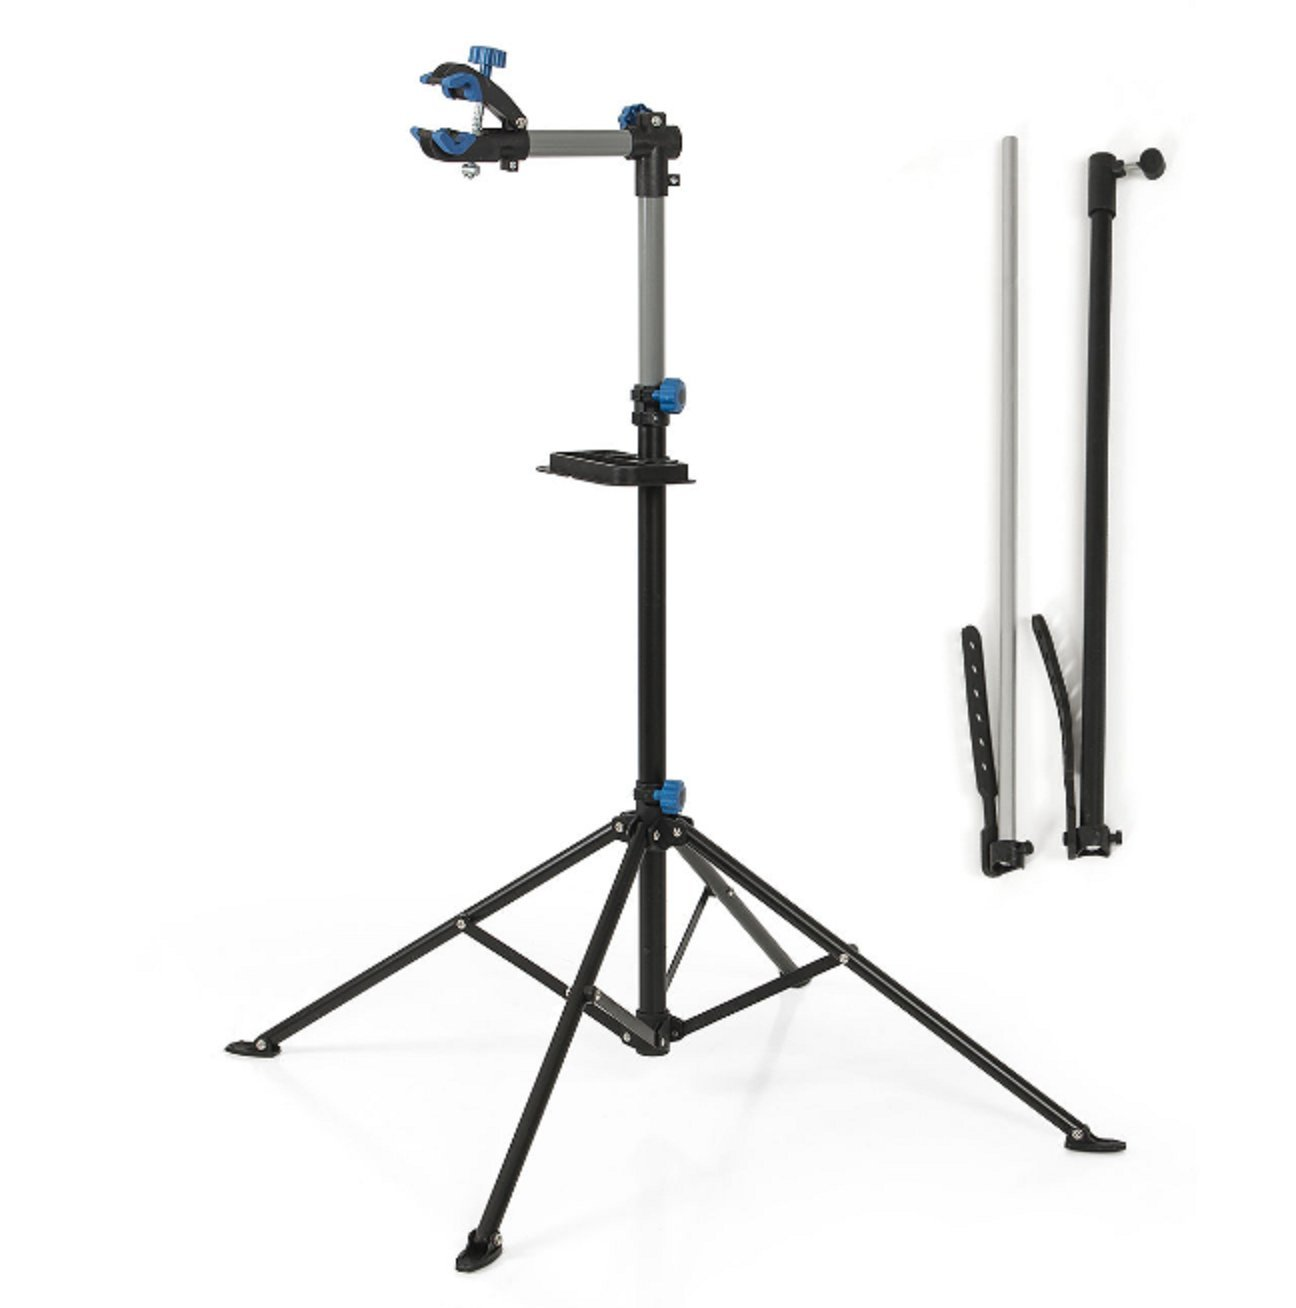 Stand Repair Bike Tool Bicycle Adjustable 43'' To 75'' Pro Rack Repair Stand With Telescopic Arm Cycle